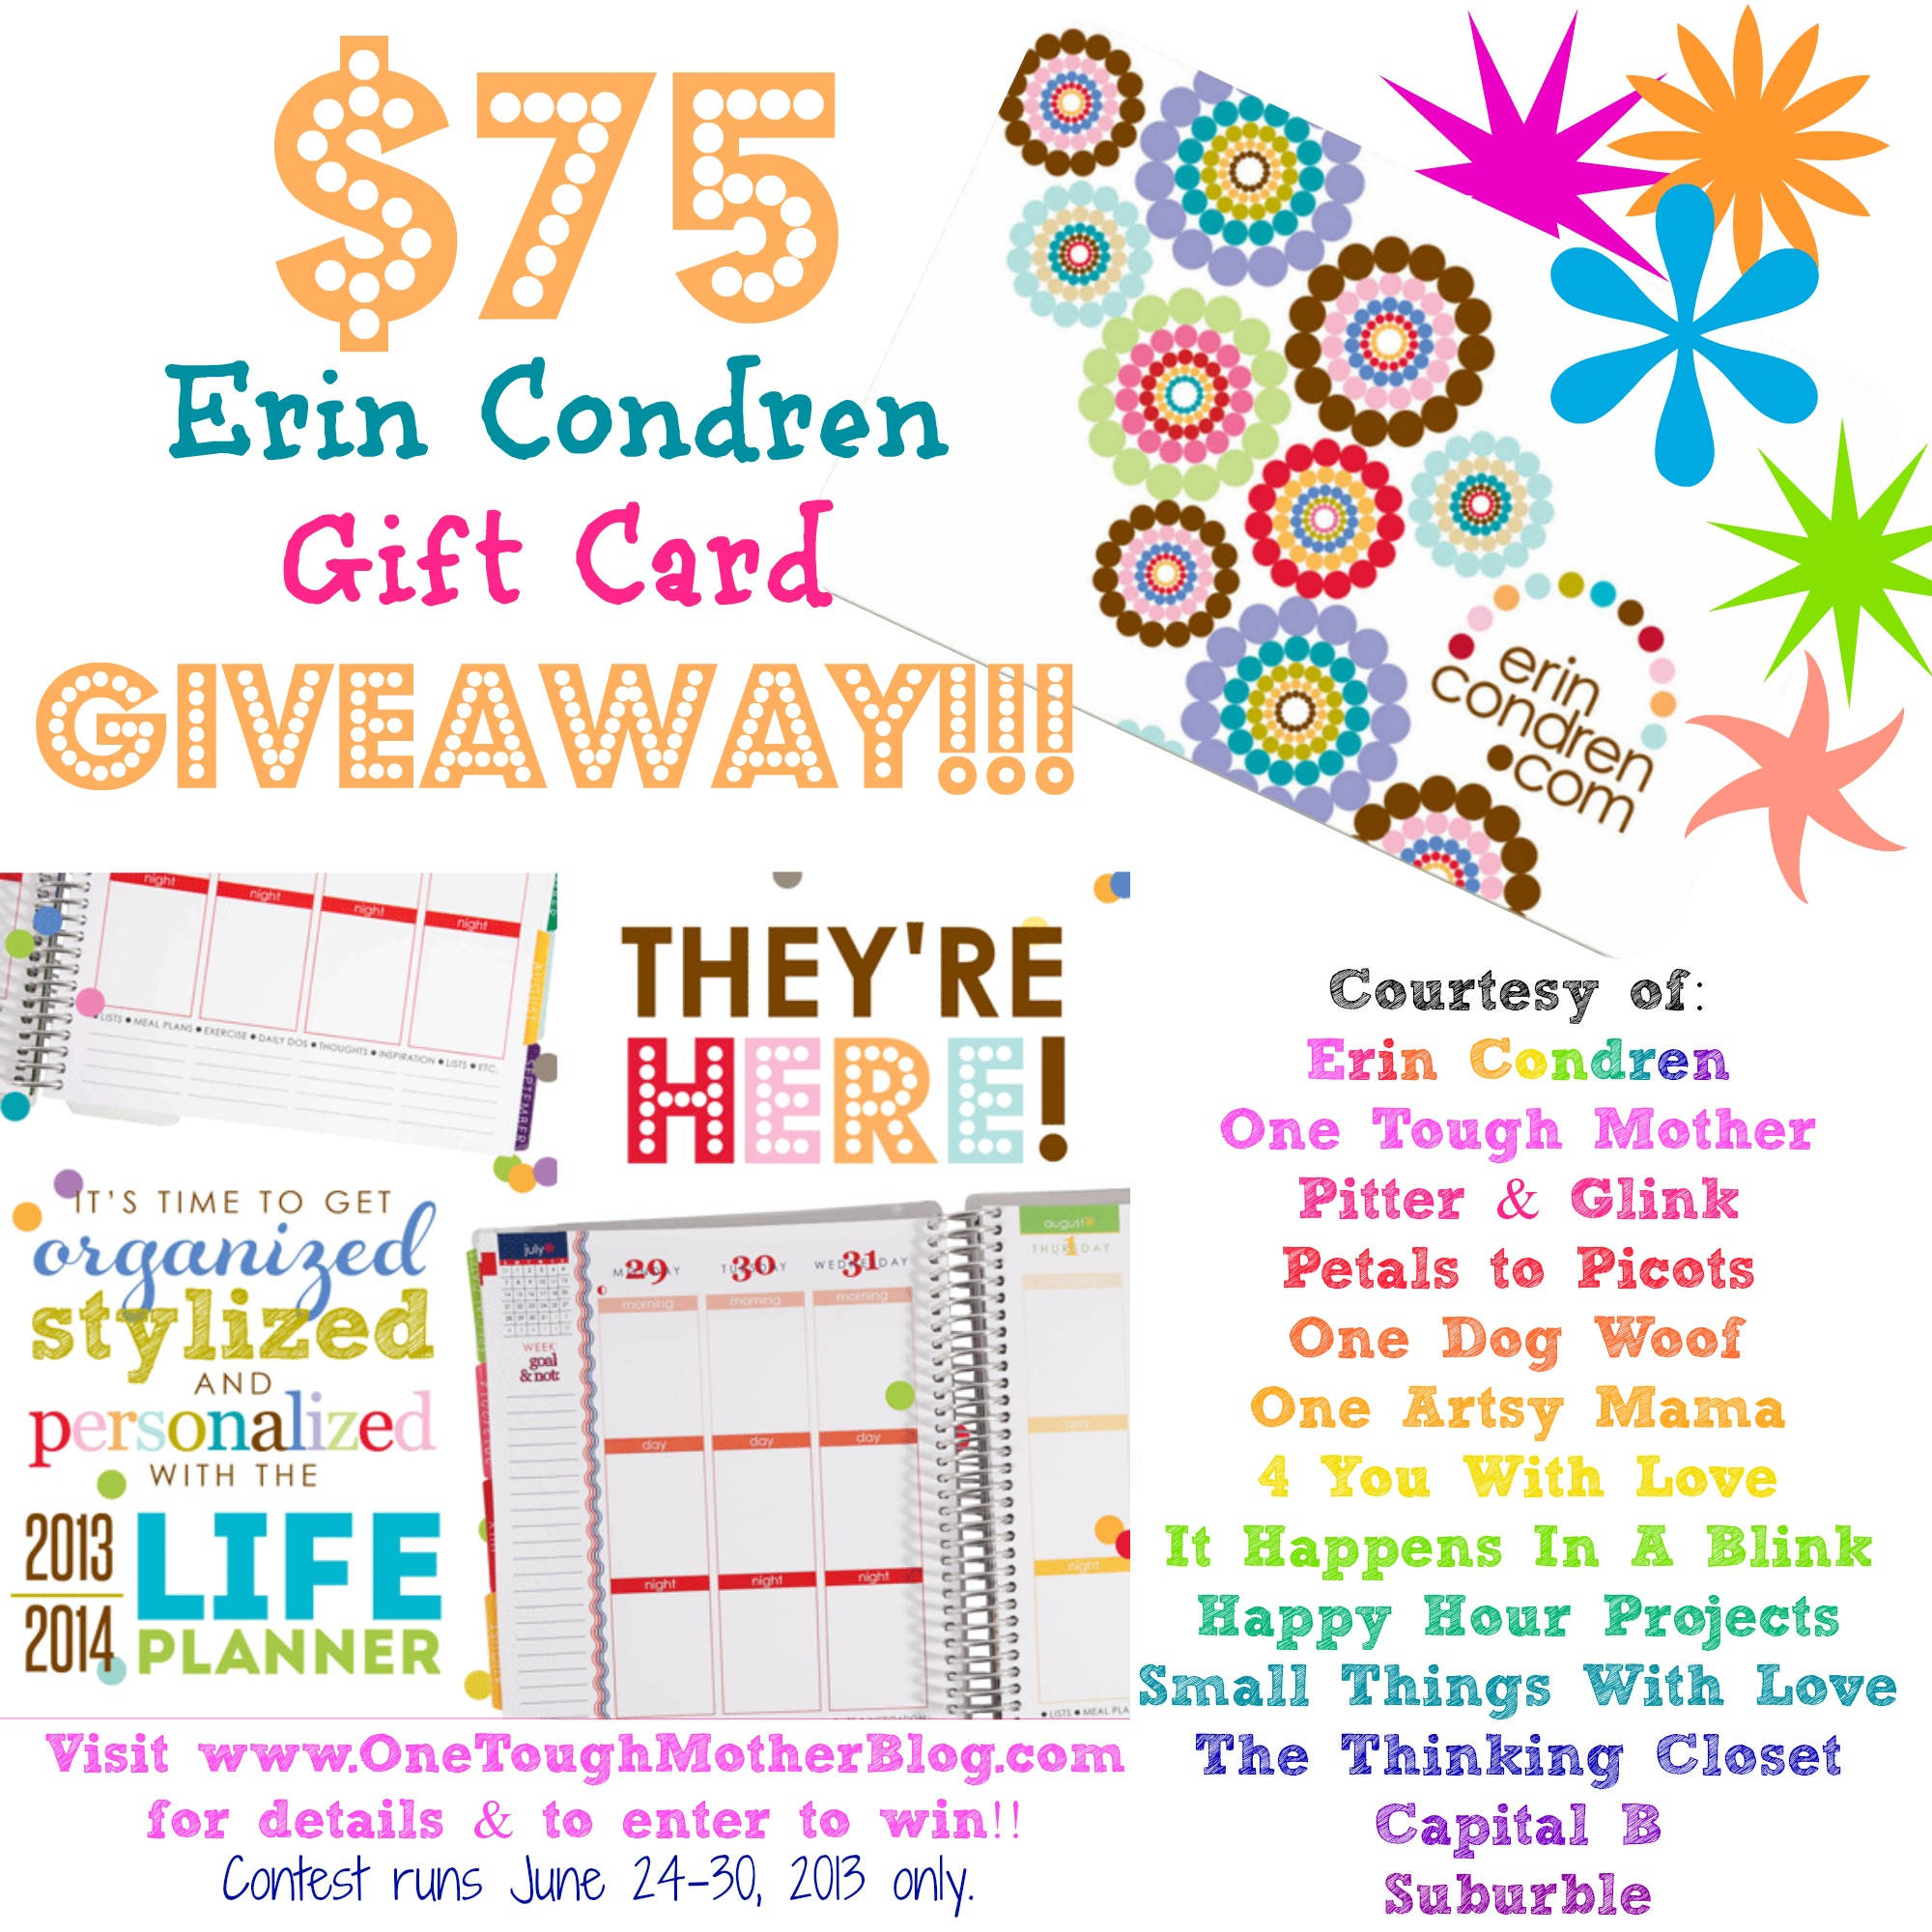 Erin Condren Gift Card Giveaway at www.happyhourprojects.com